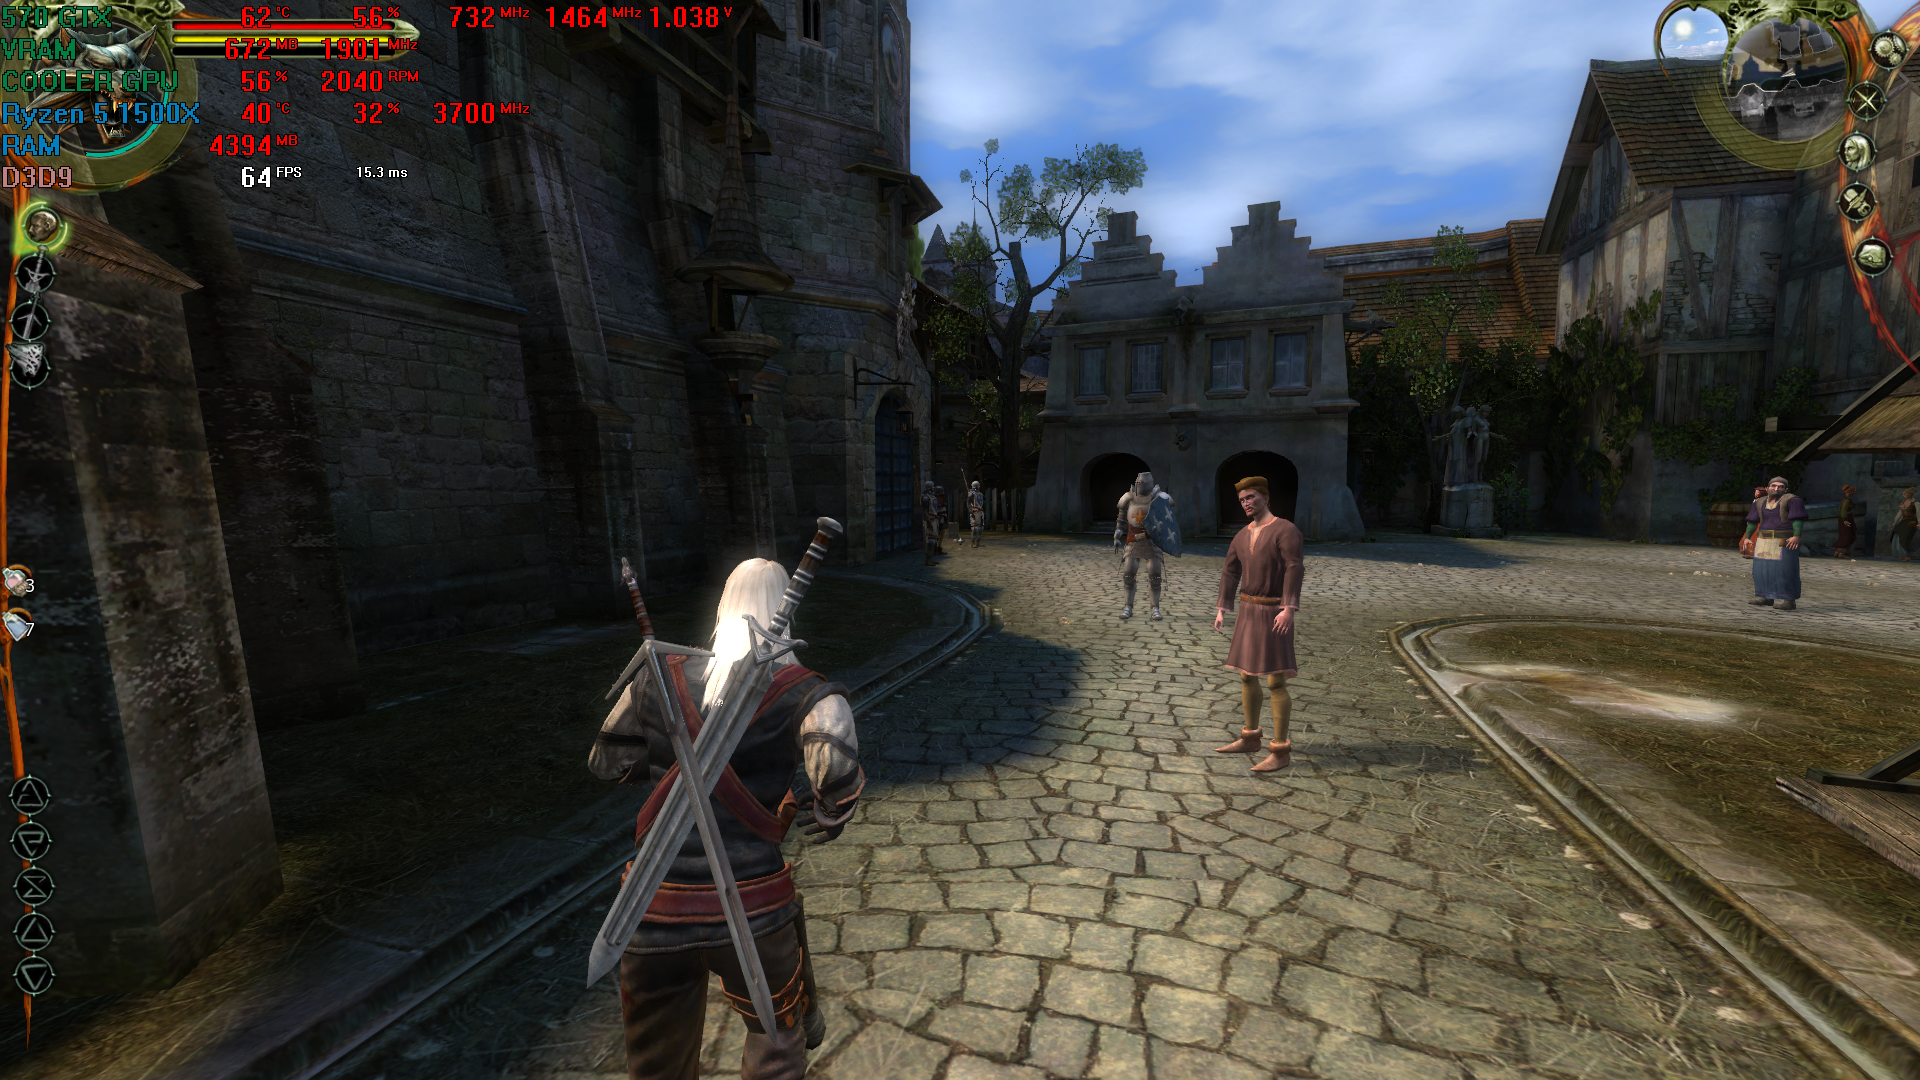 witcher_2018_07_02_23_37_46_197.png - Witcher, the